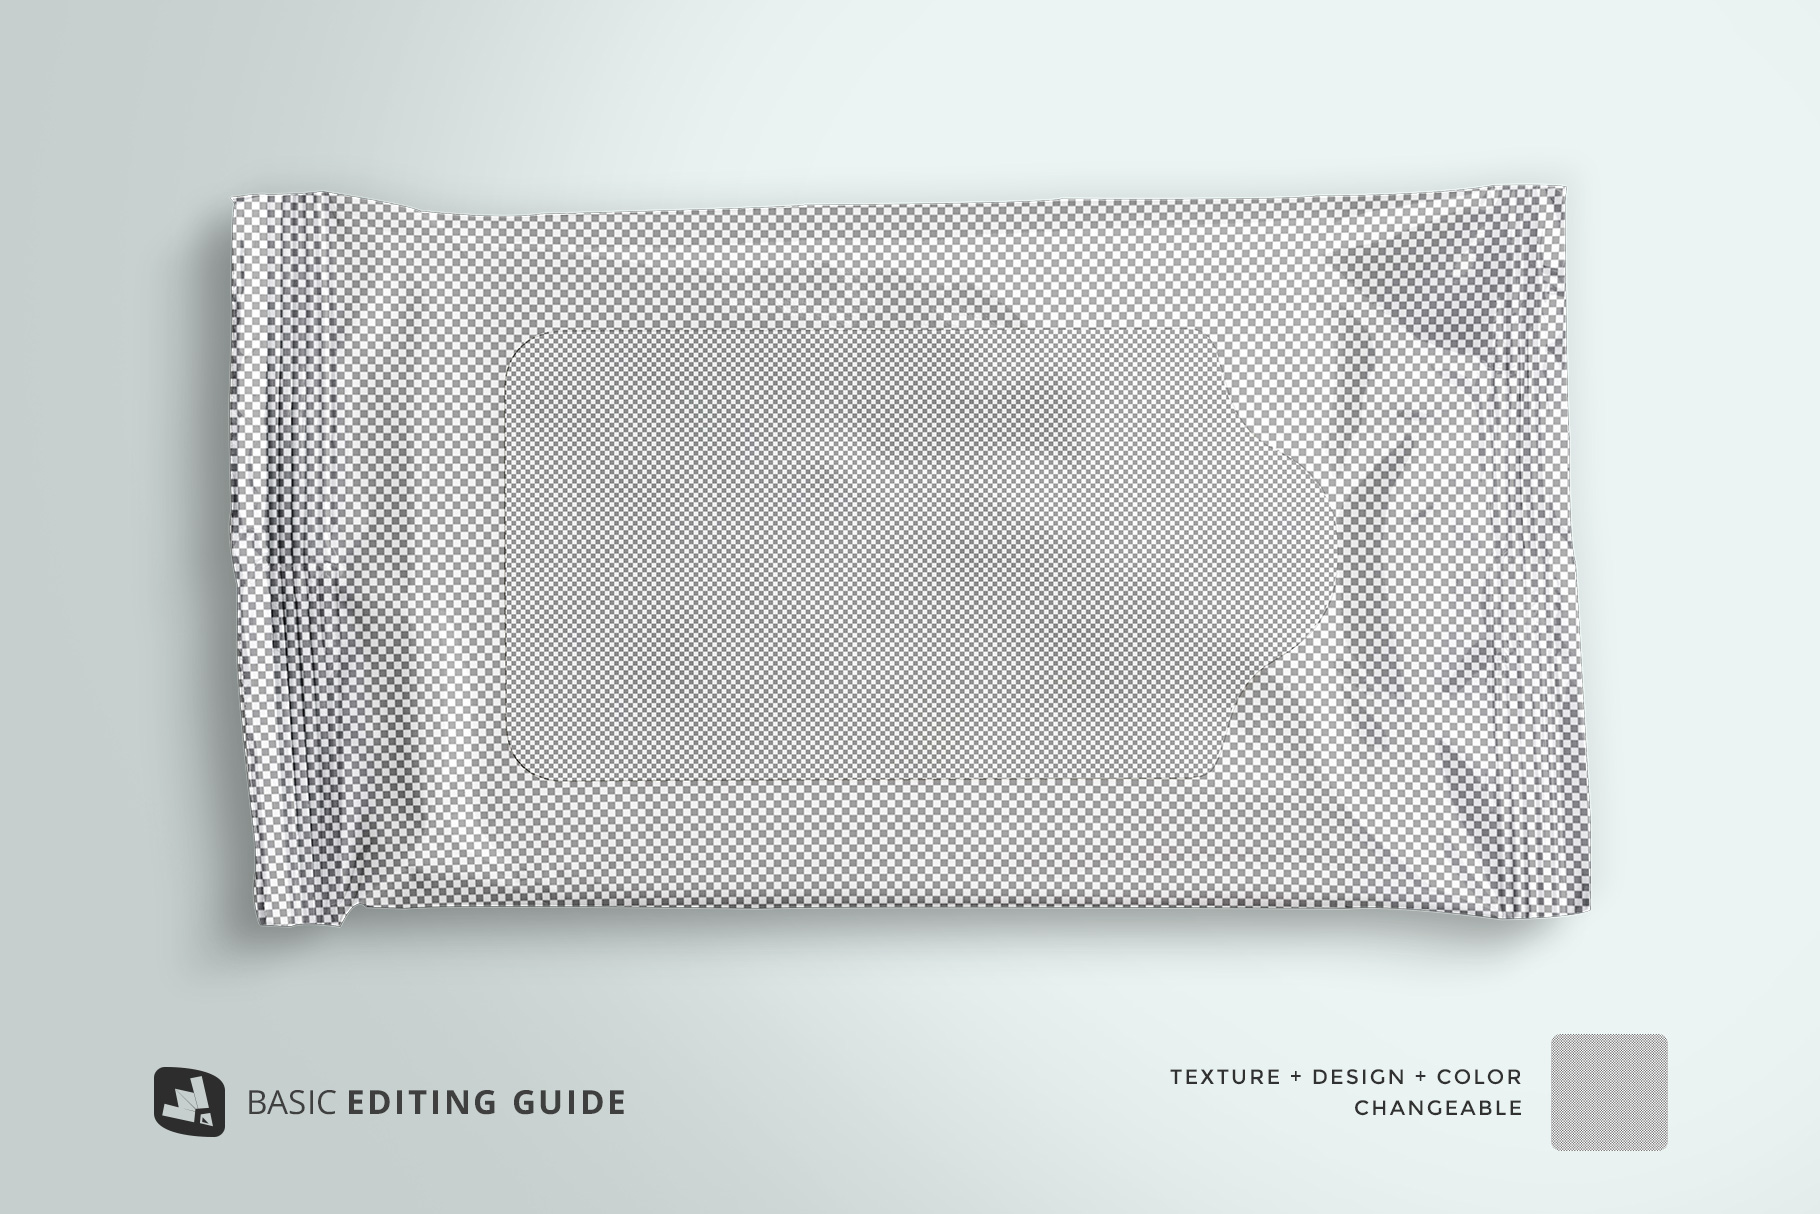 editability of the disposable wipes packaging mockup